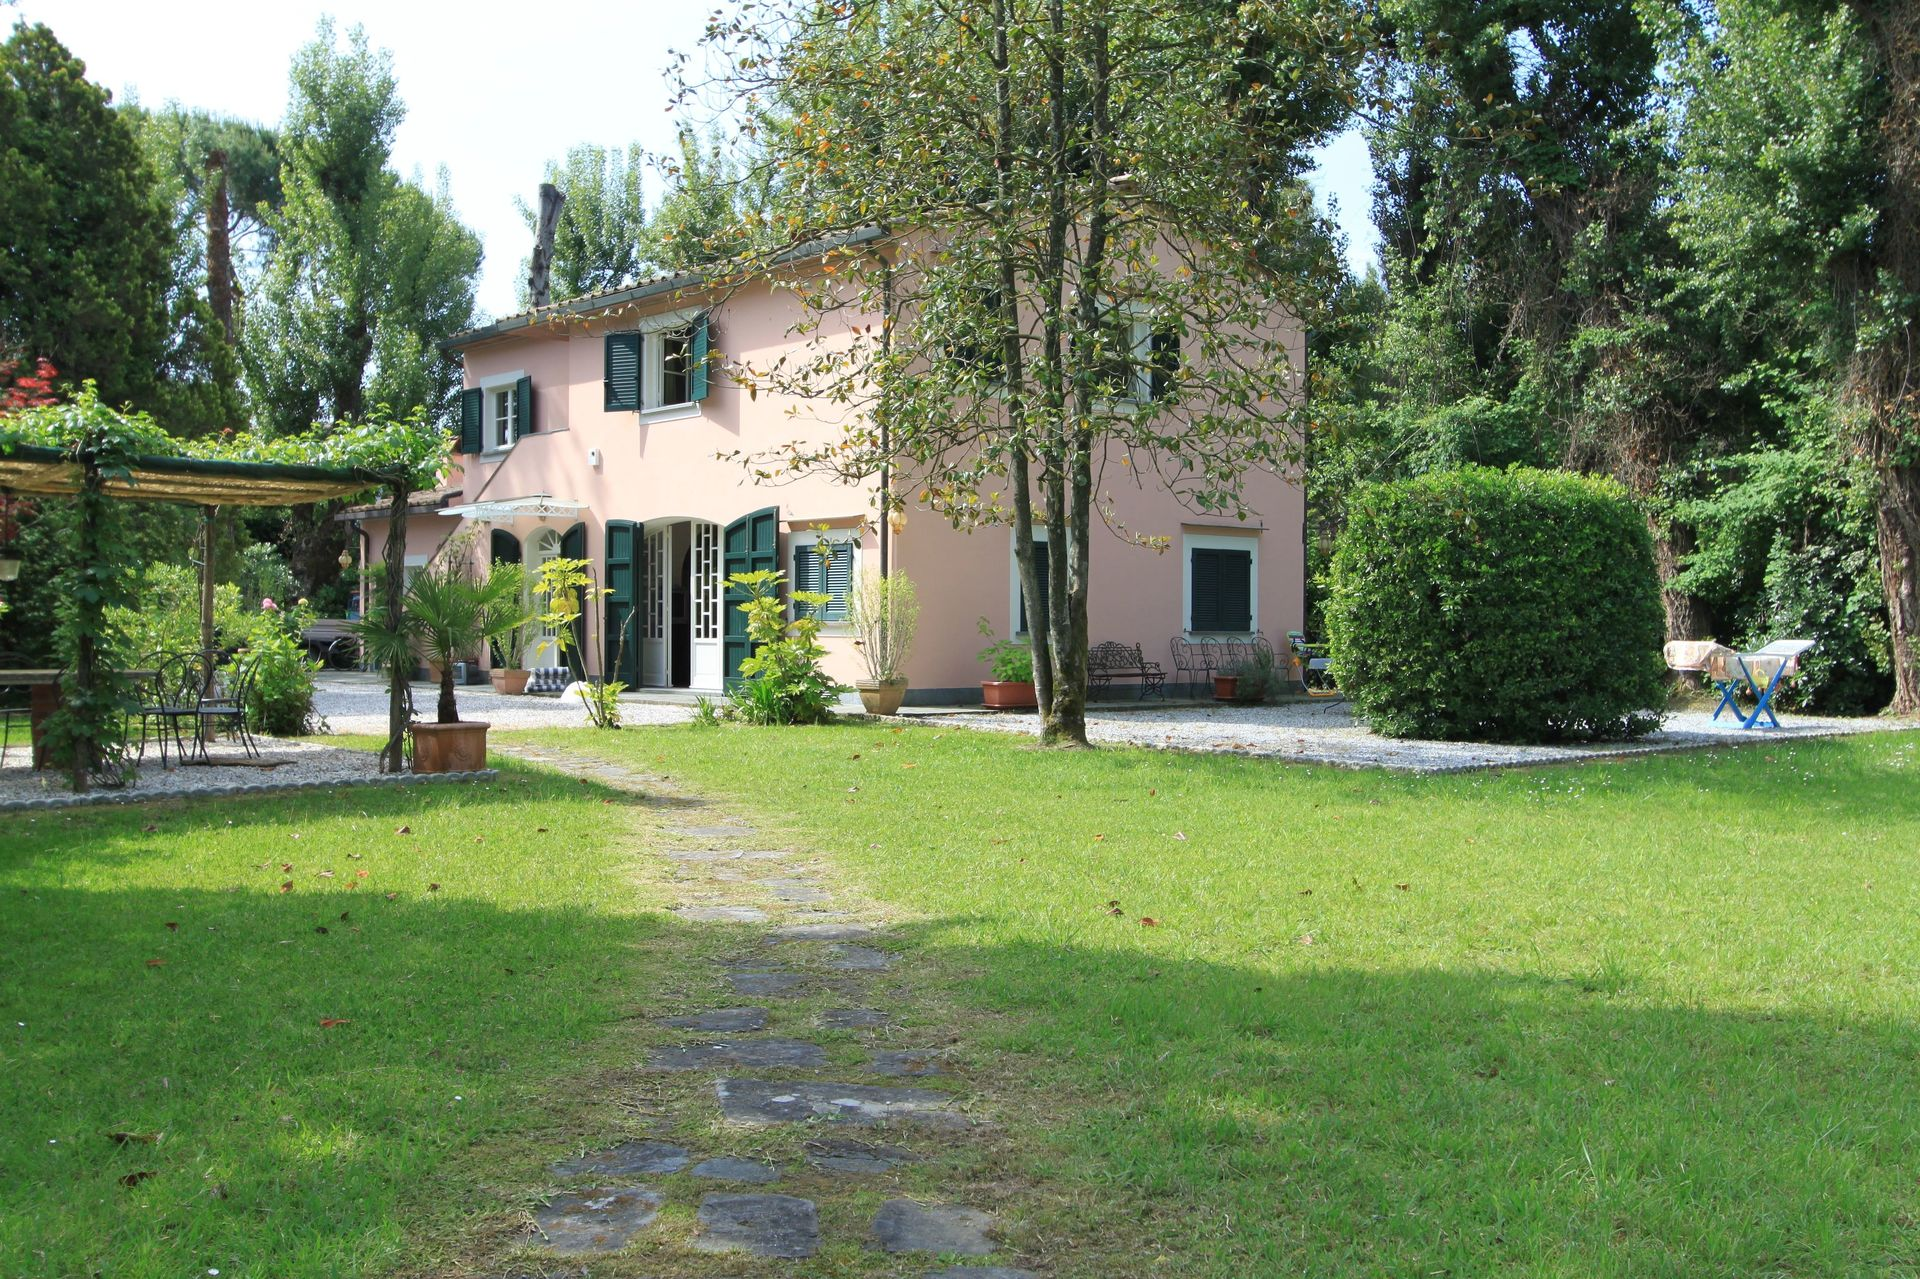 holiday rental the park located in forte dei marmi tuscany italy